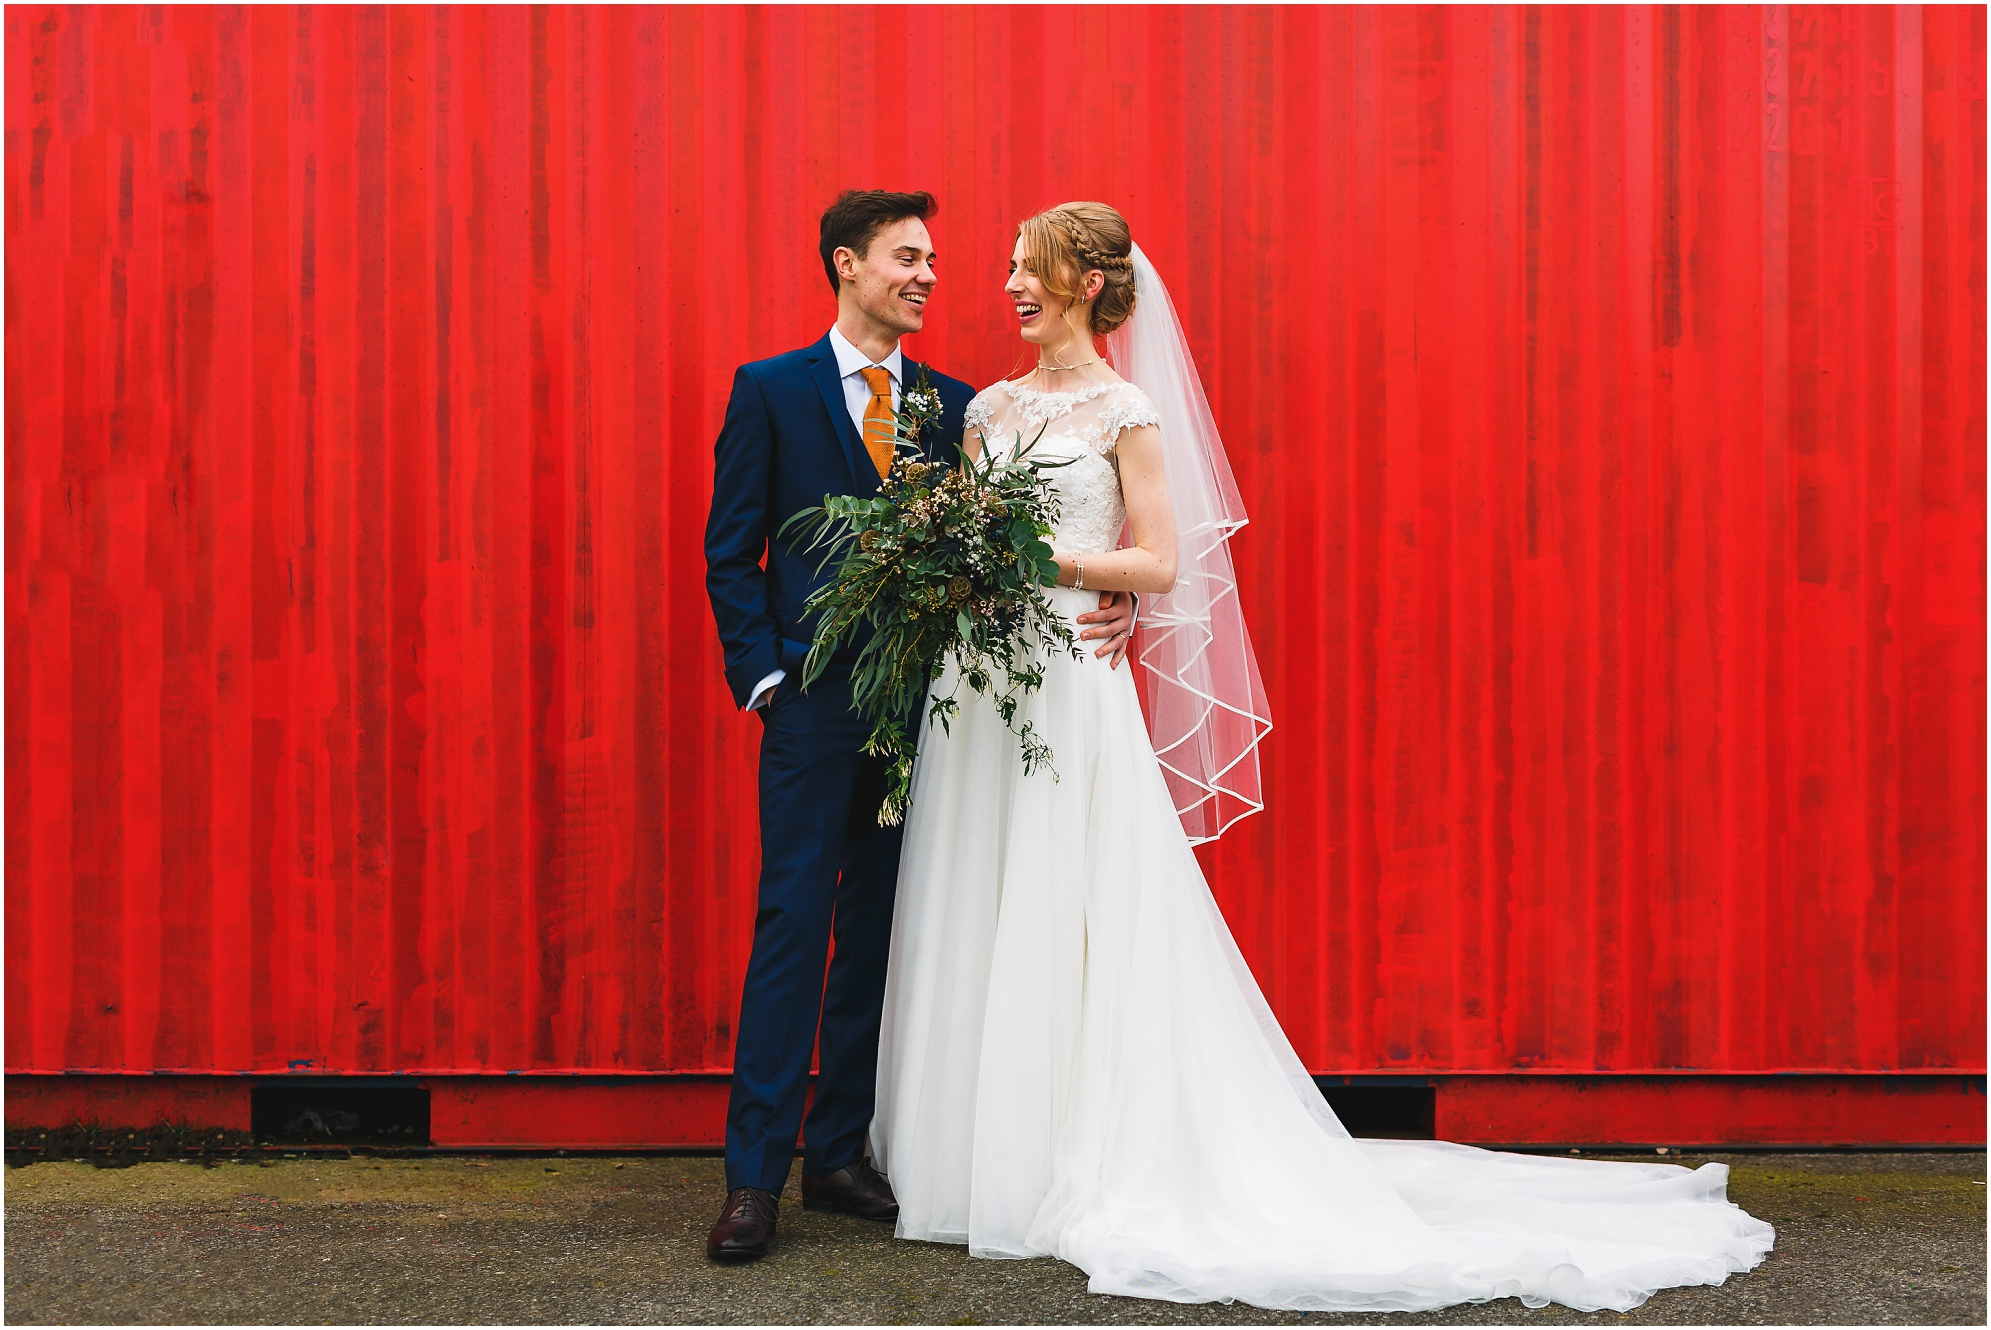 New Mr and Mrs in front of large red rustic background near Donington Park Farmhouse Wedding Photographer Gareth Newstead